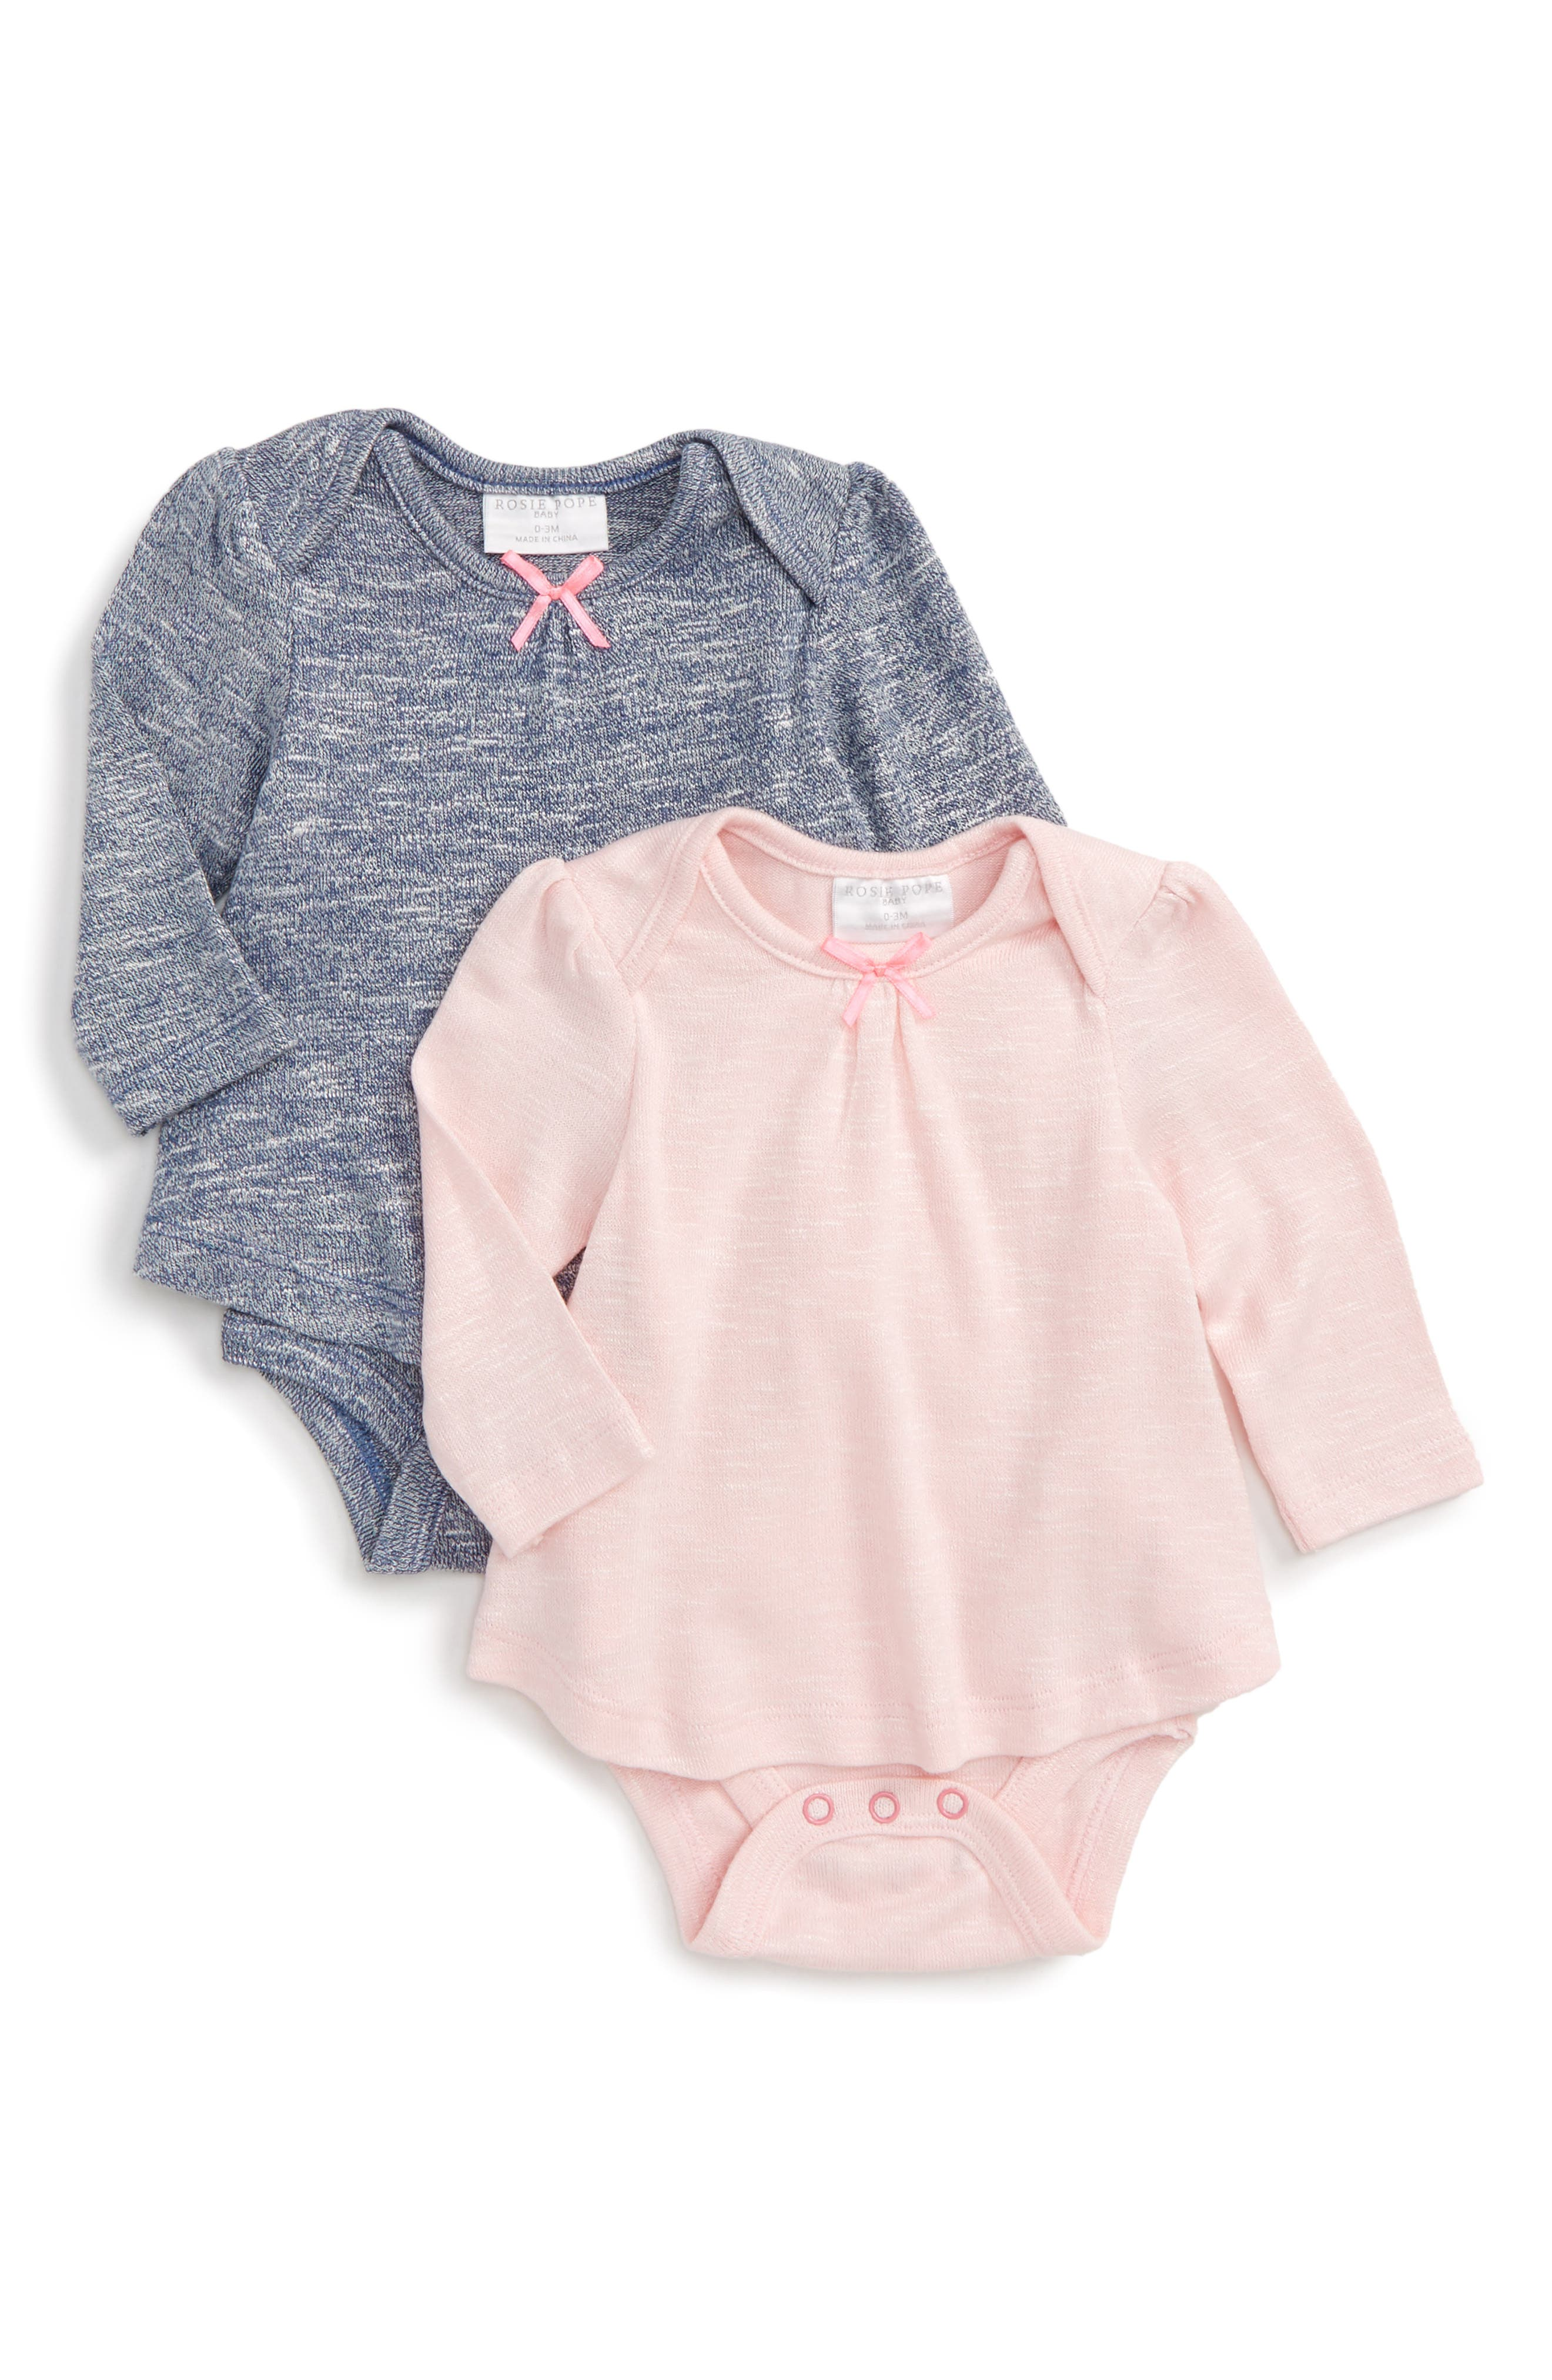 2-Pack Knit Bodysuits,                         Main,                         color, Navy